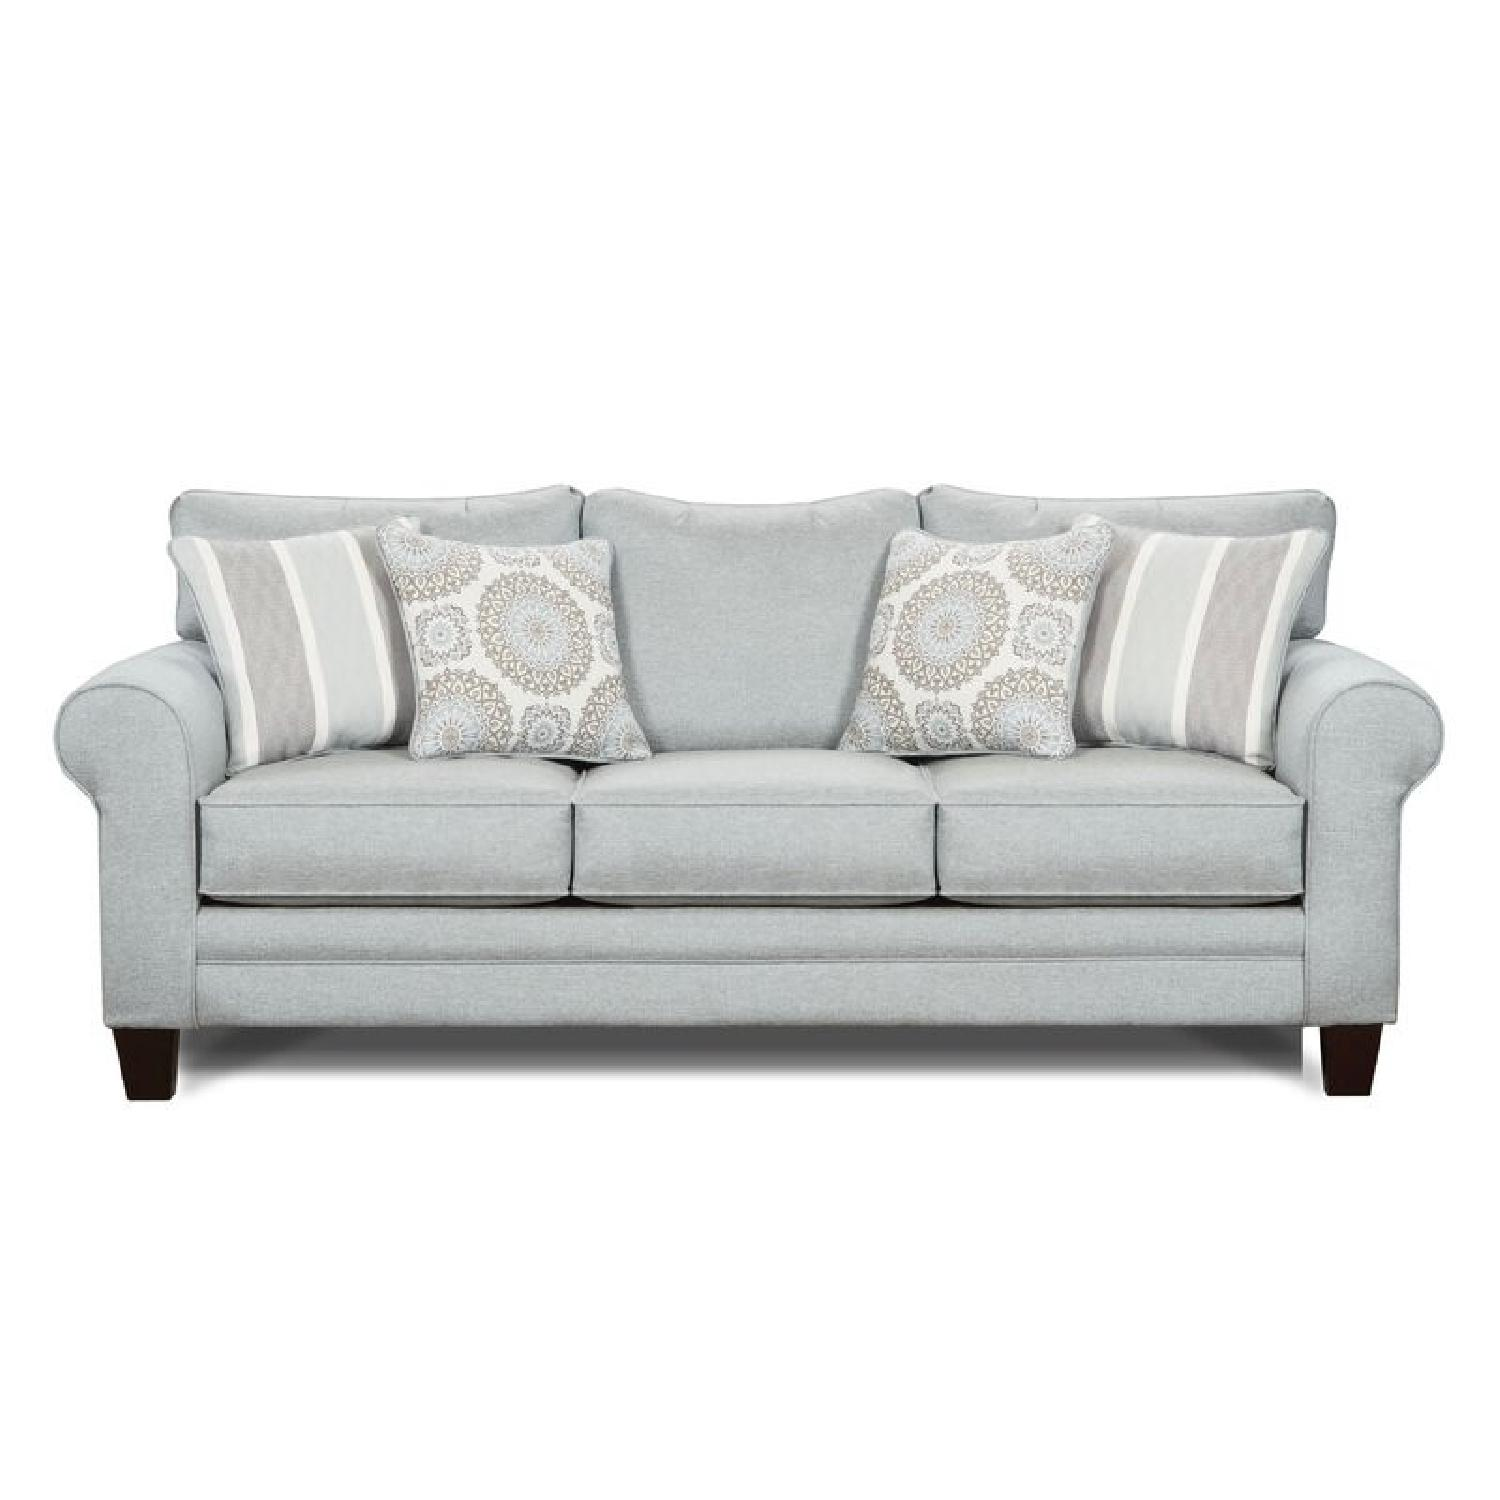 Wayfair Sedgley Rolled Armed Sofa with Reversible Cushion - image-9